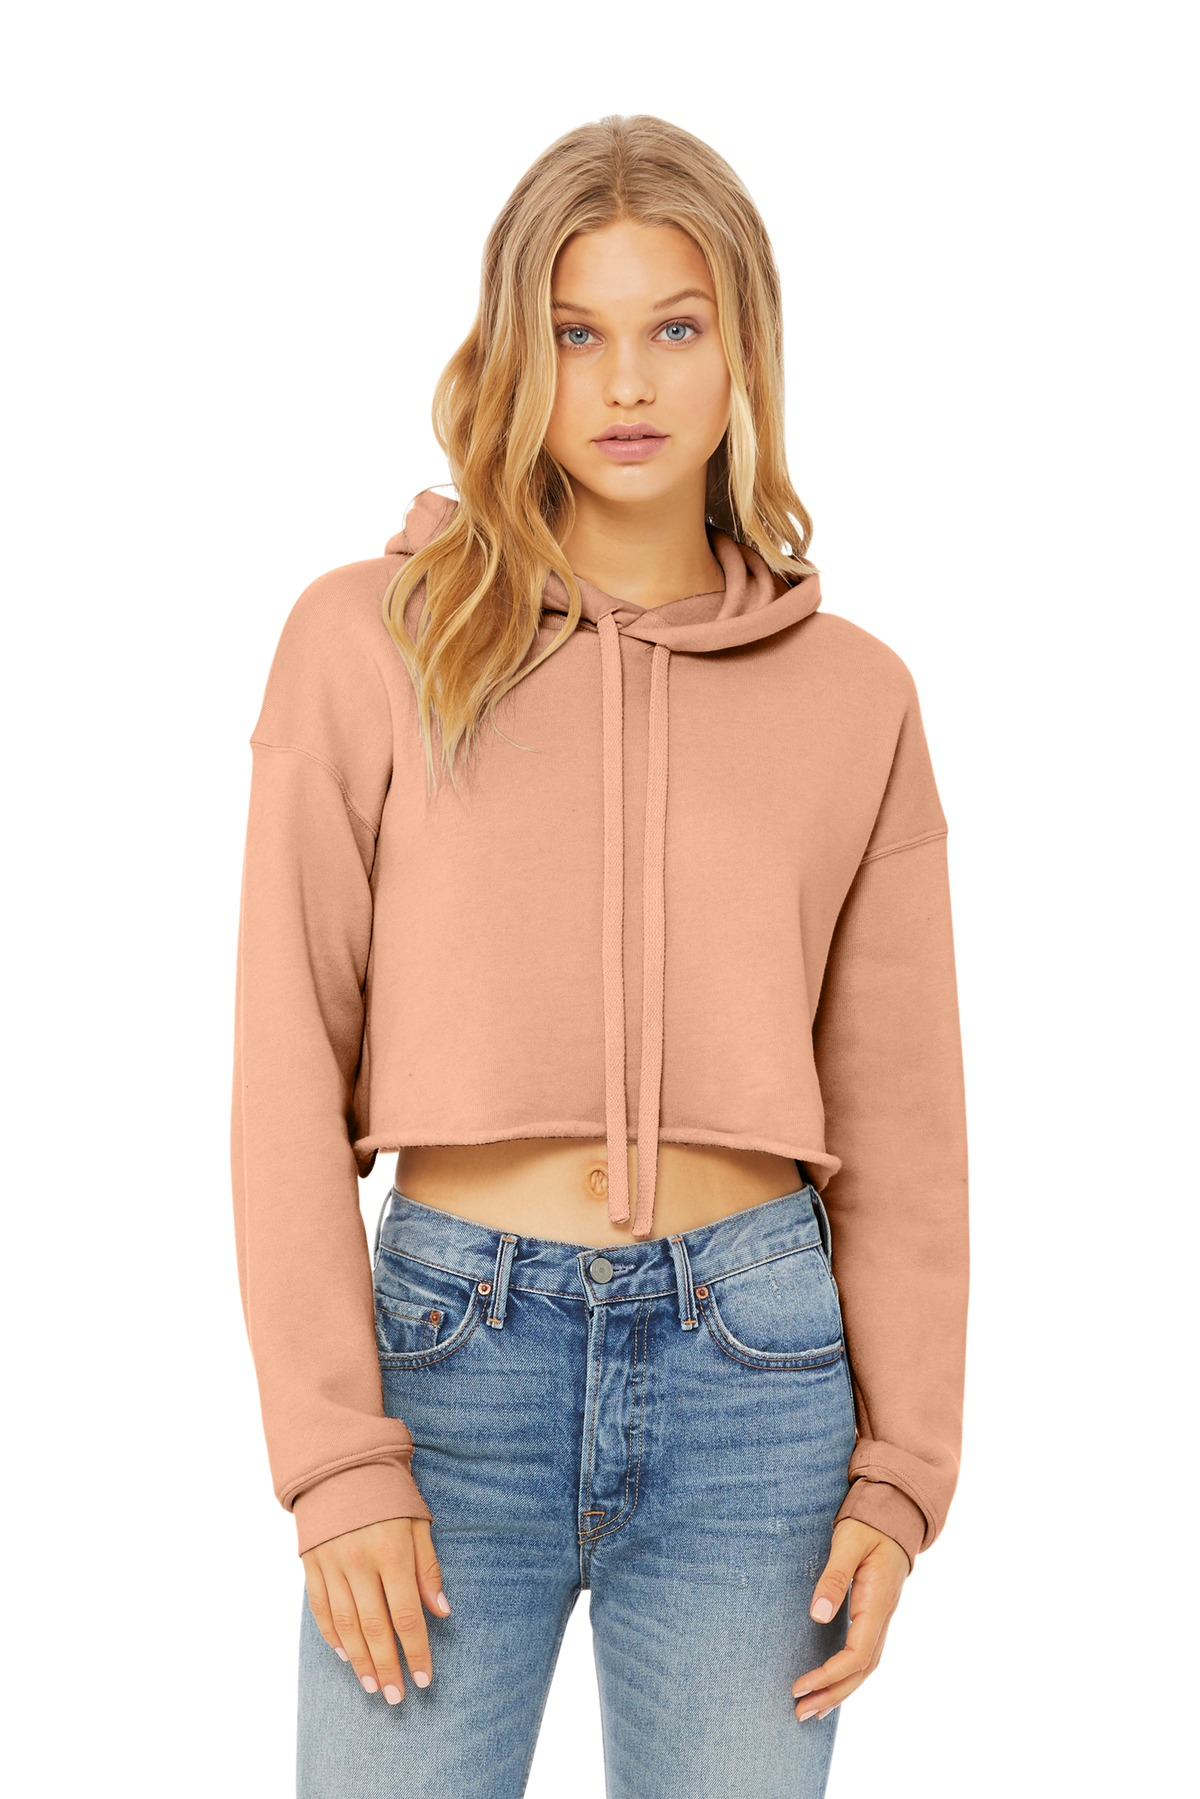 BELLA+CANVAS Women''s Sponge Fleece Cropped Fleece Hoodie. BC7502